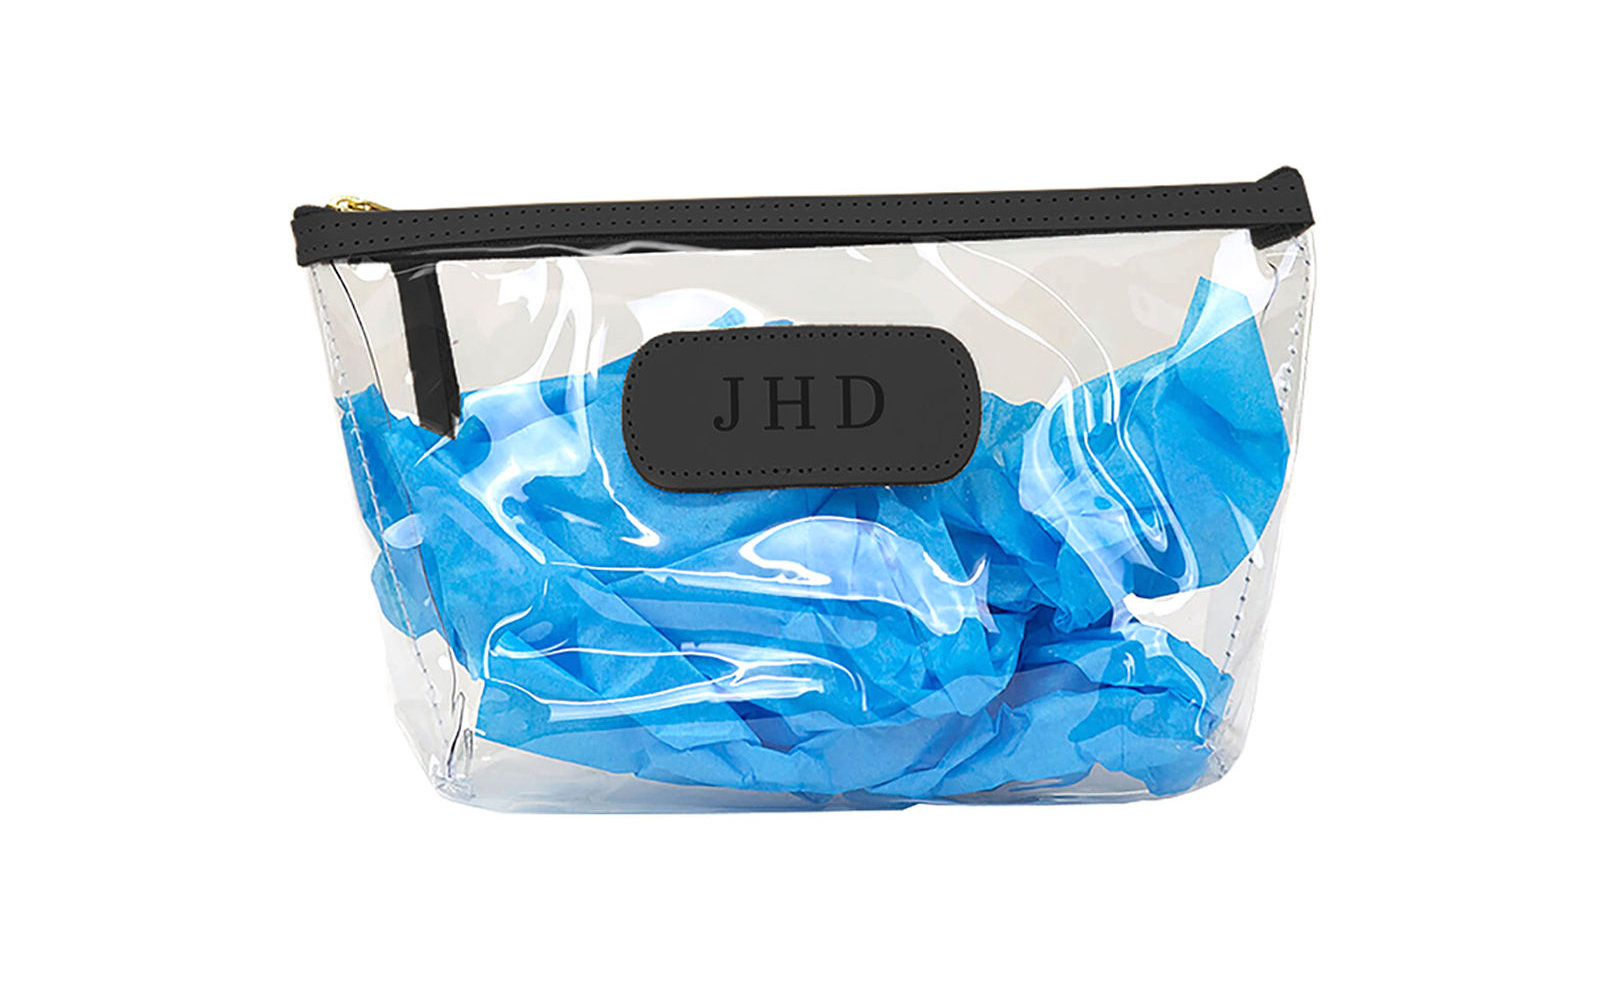 474ee096719caf The Best Clear Travel Makeup Bags   Cosmetics Cases